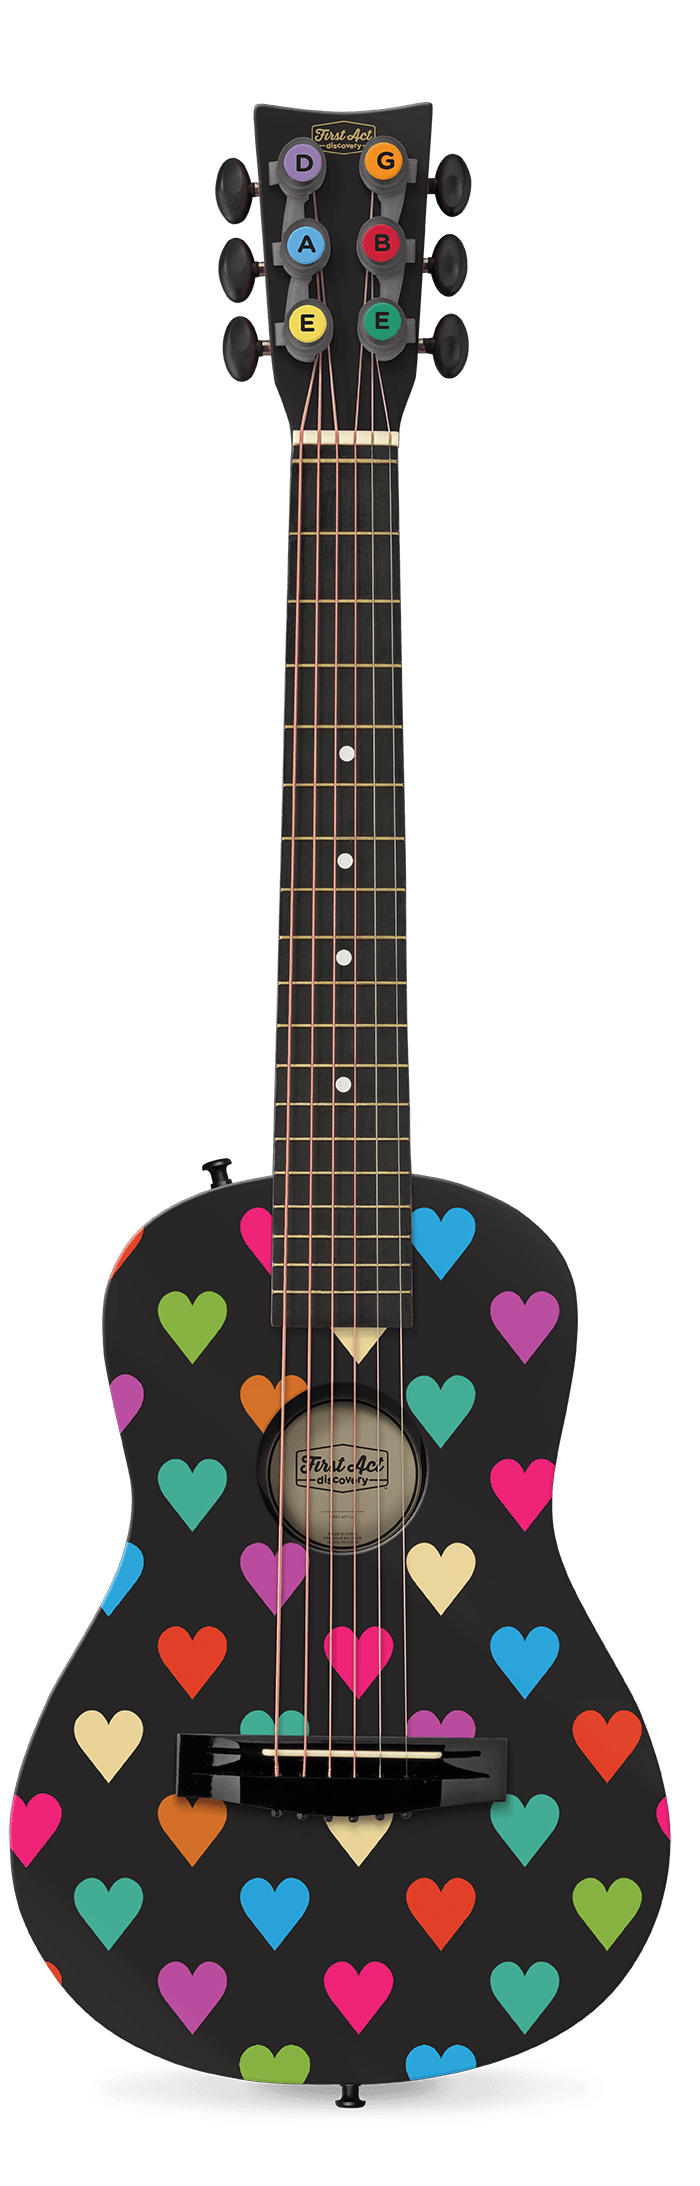 "Black Hearts 30"" Acoustic Guitar 